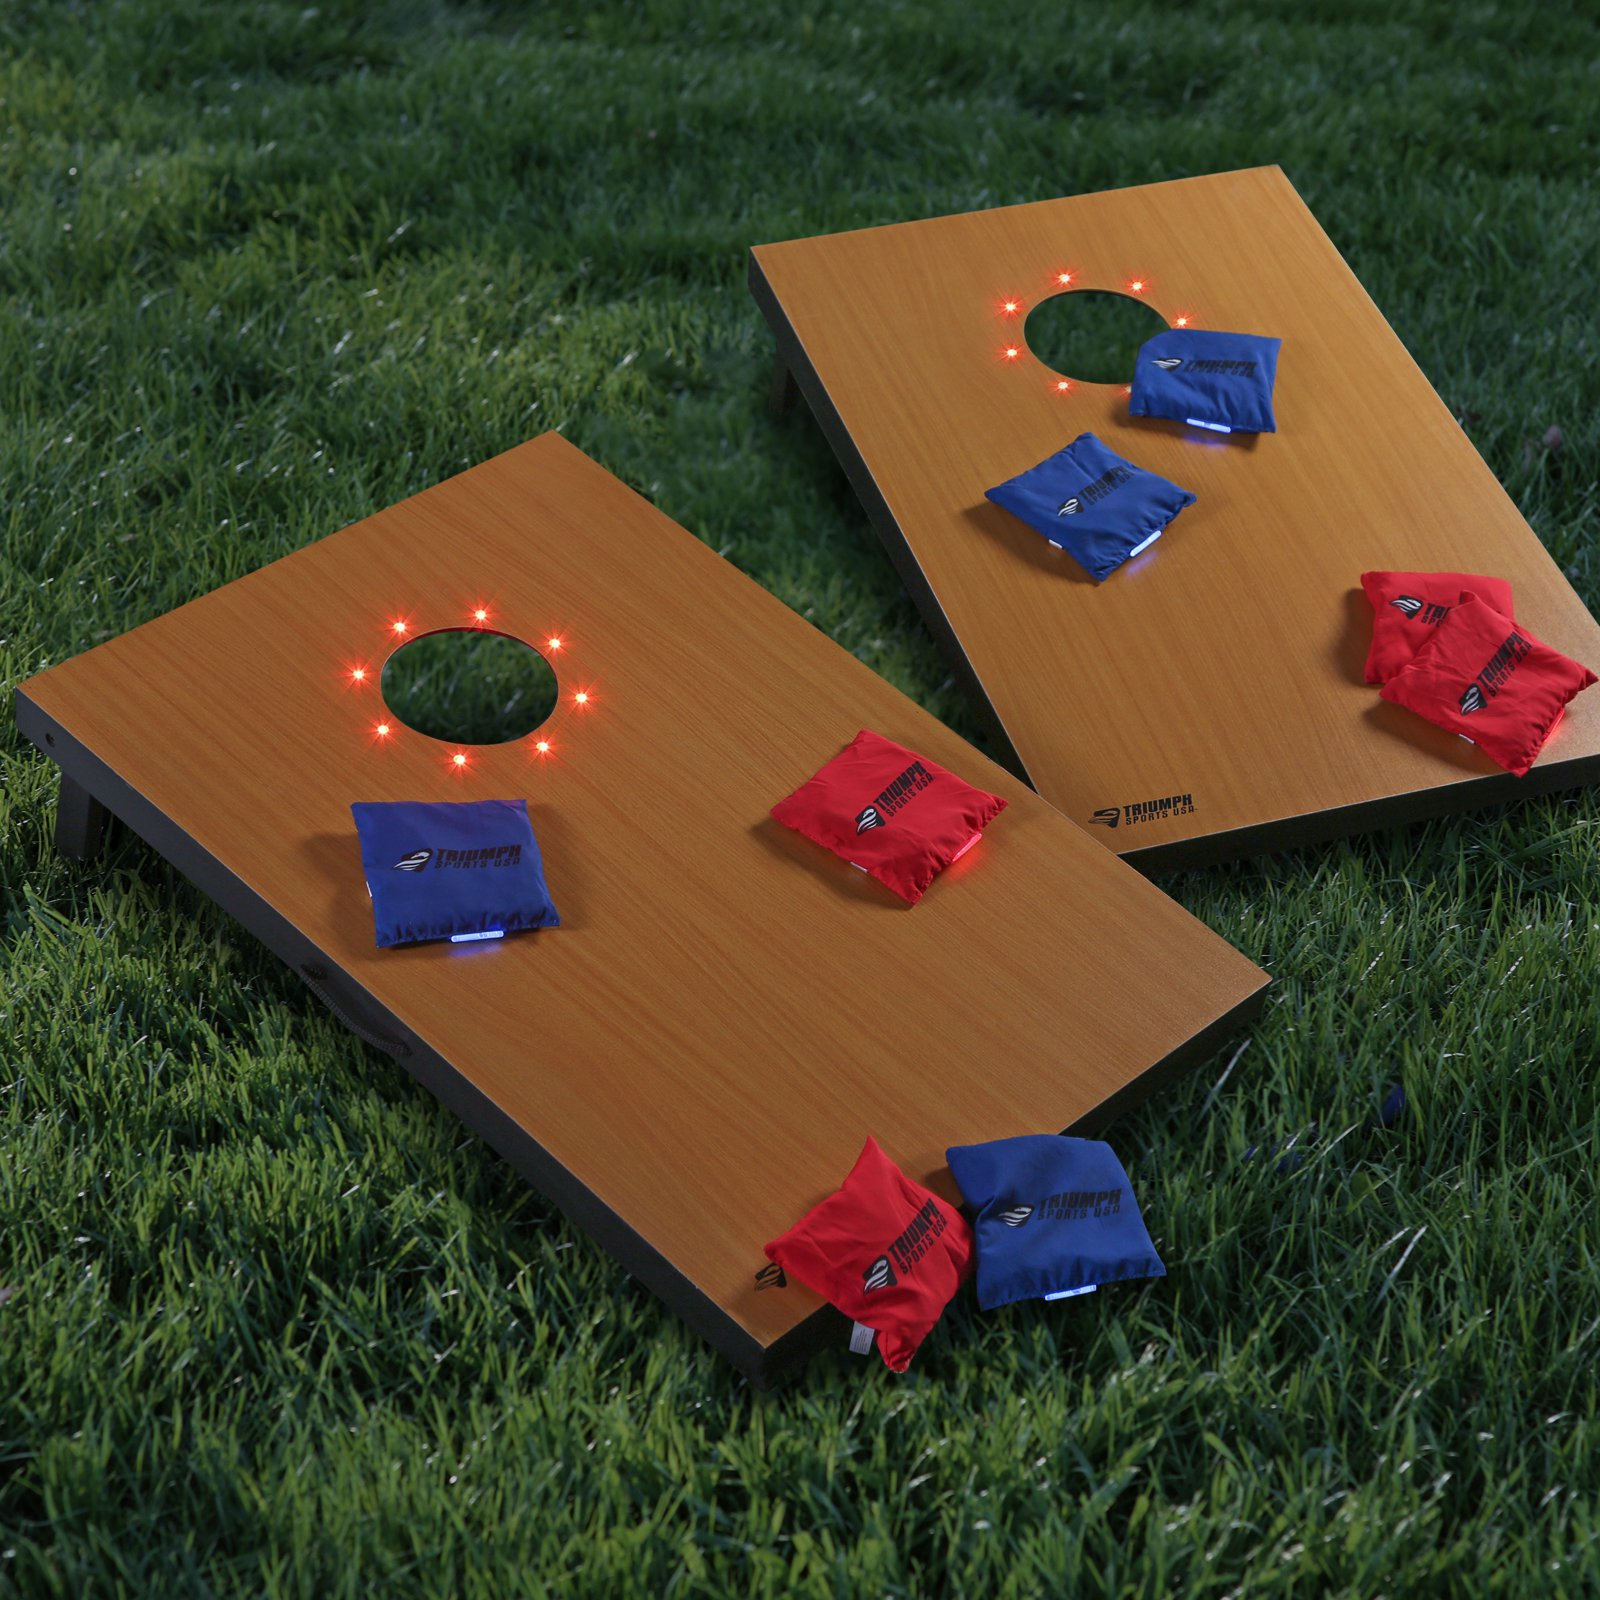 Triumph Sports LED Glow Cornhole Set